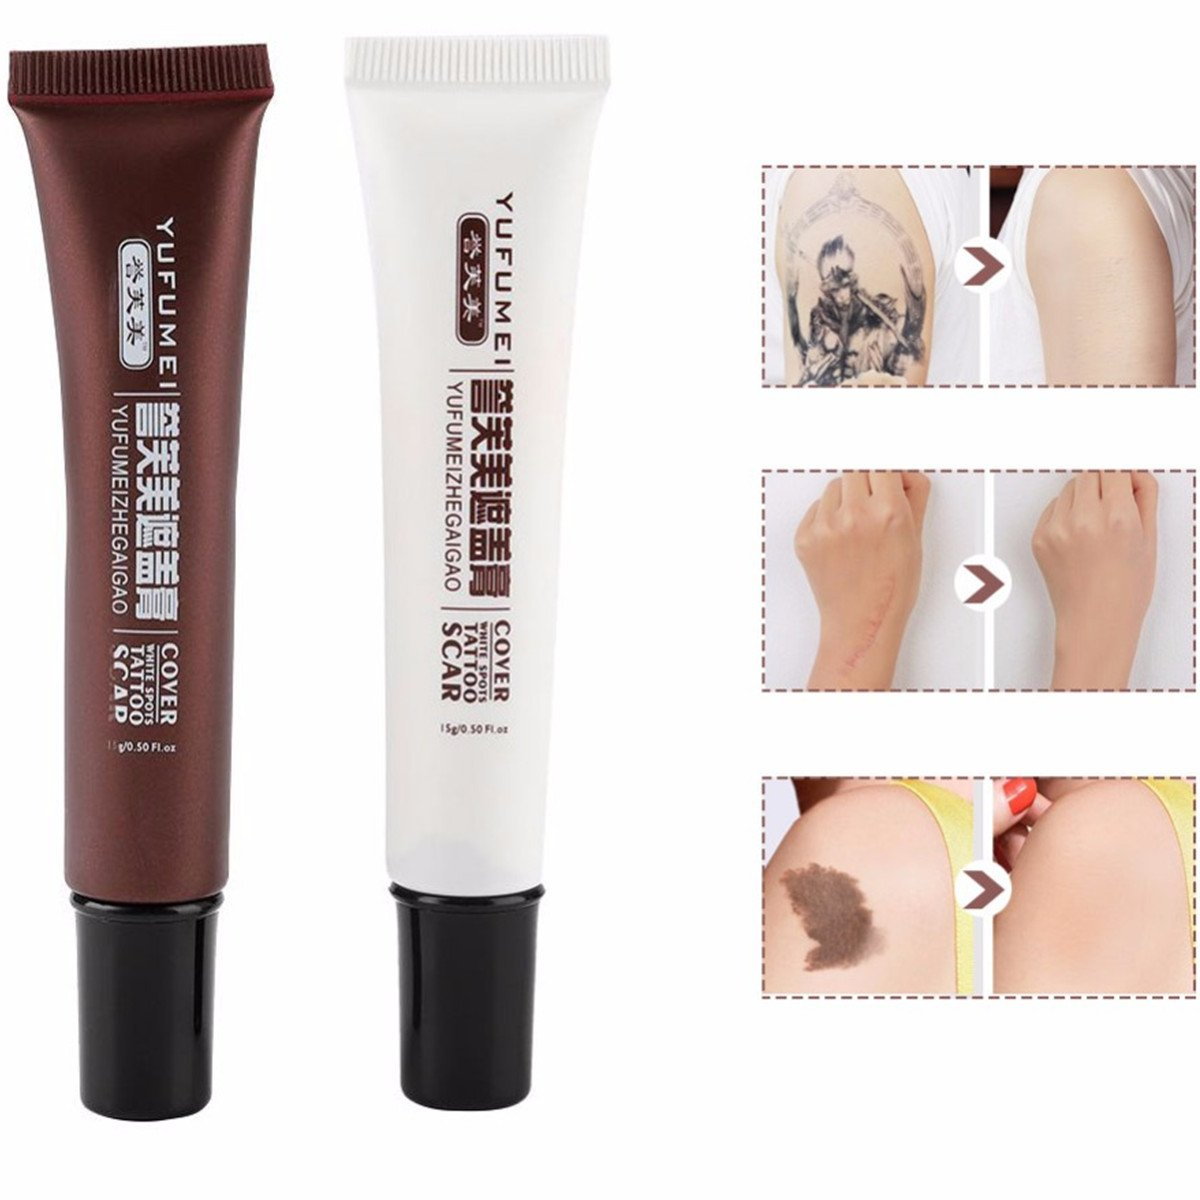 GARYOB Scar Tattoo Concealer Hiding Spots Birthmarks Makeup Cover Up Cream Set Waterproof Cover All Ance Scar and Tattoo